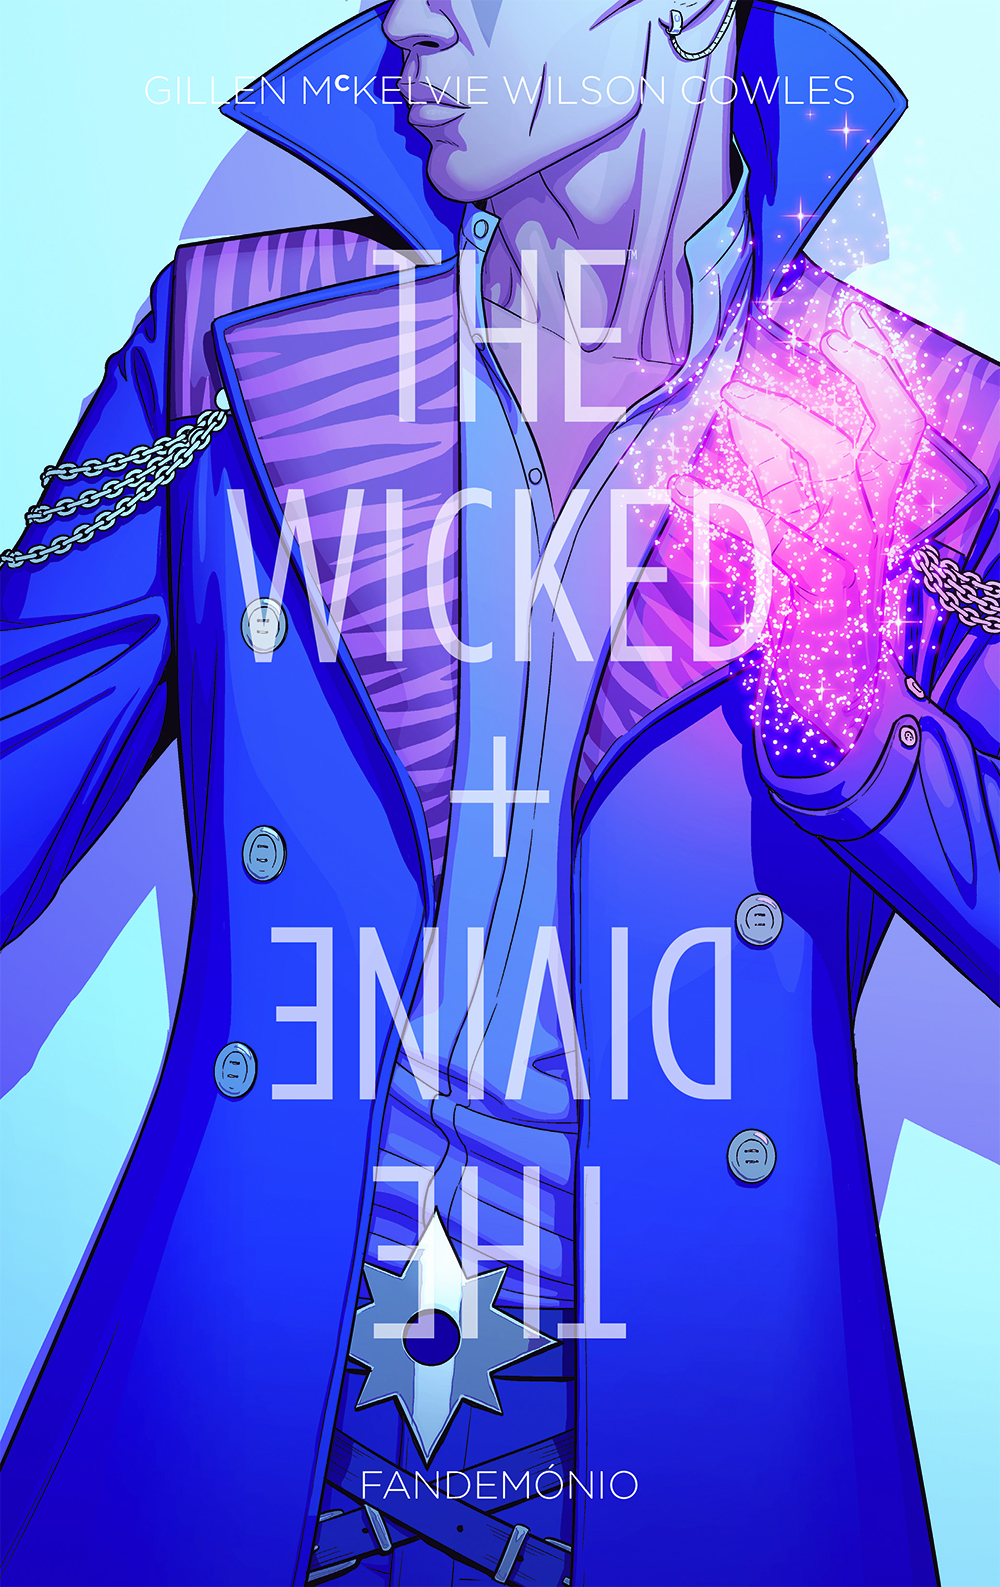 THE WICKED + THE DIVINE vol. 2: Fandemónio